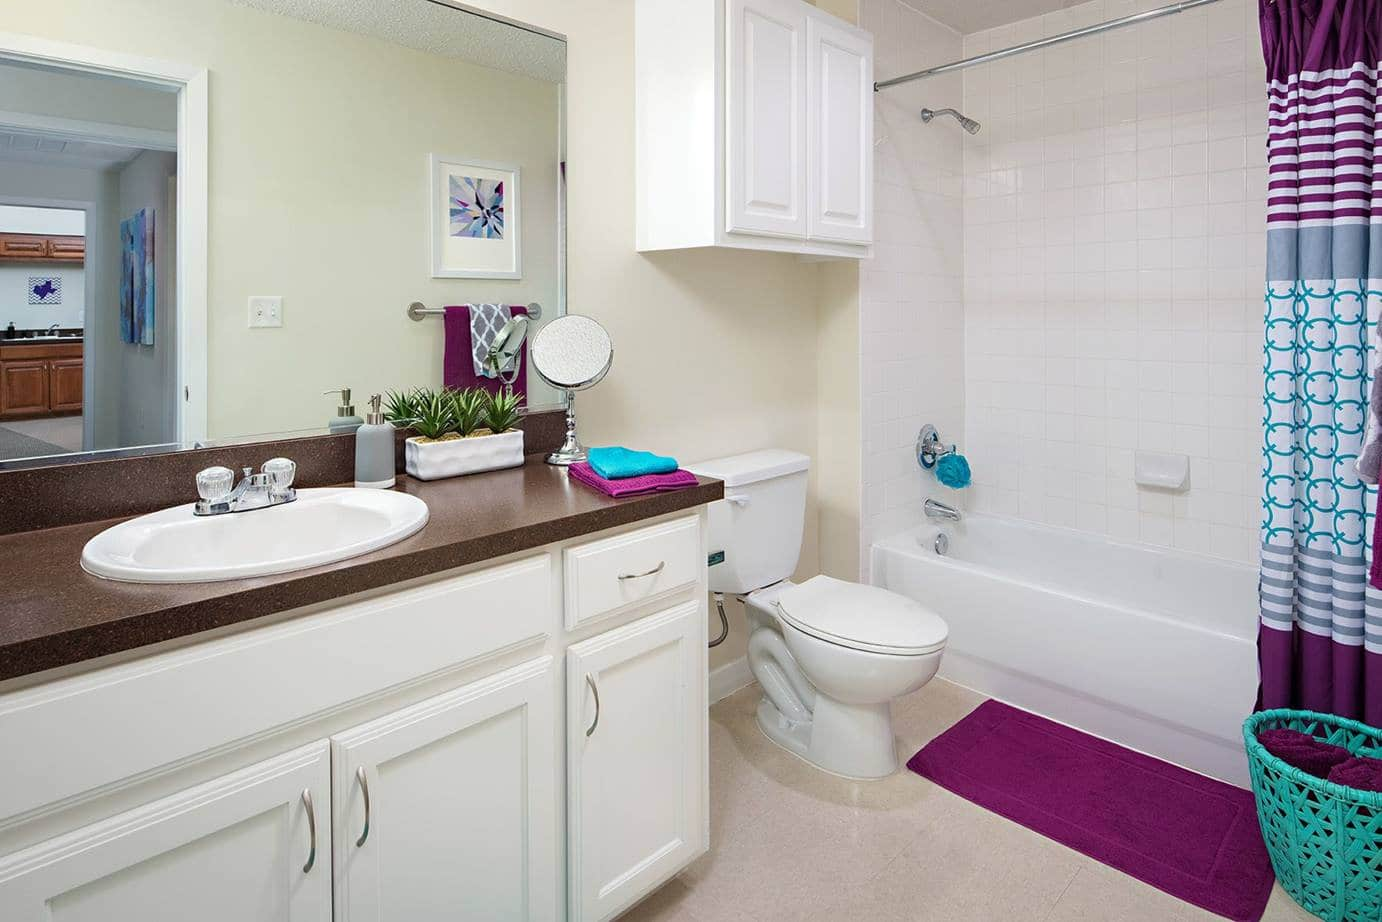 Grandmarc-At-Westberry-Place-Fort-Worth-TX-Bathroom-Unilodgers